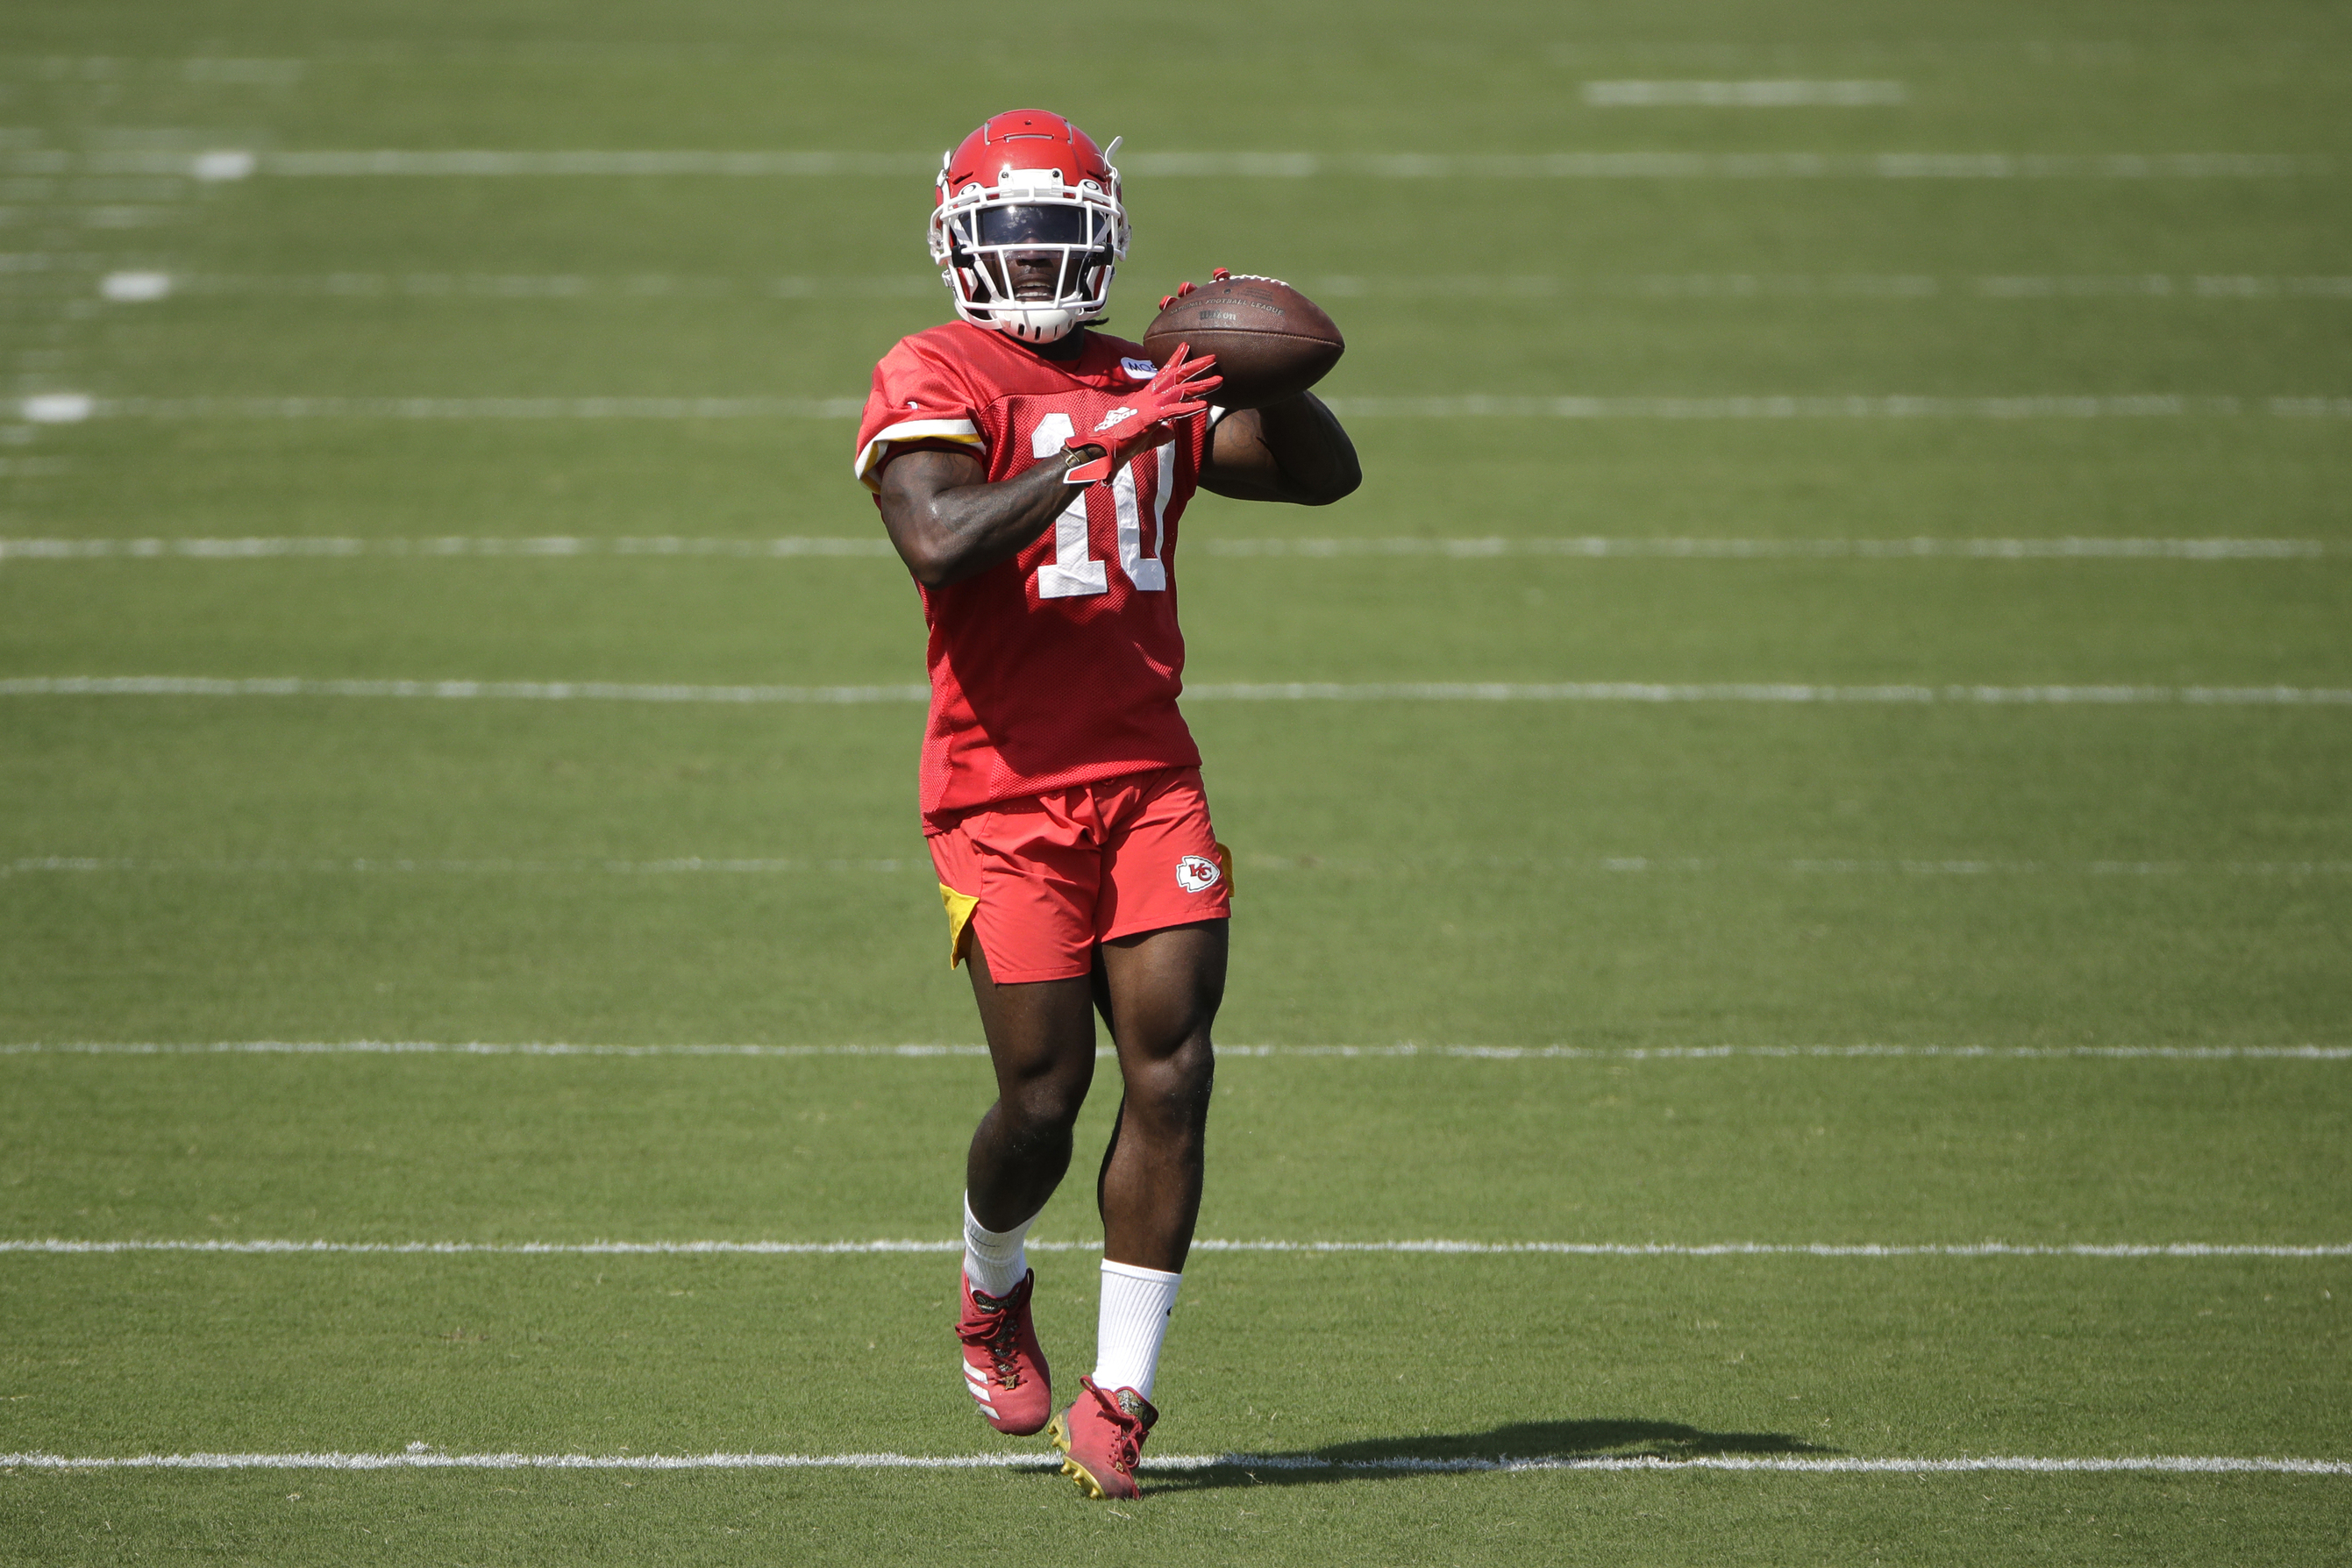 Kansas City Chiefs wide receiver Tyreek Hill throws the ball during NFL football training camp Saturday, July 27, 2019, in St. Joseph, Mo. (AP Photo/Charlie Riedel)